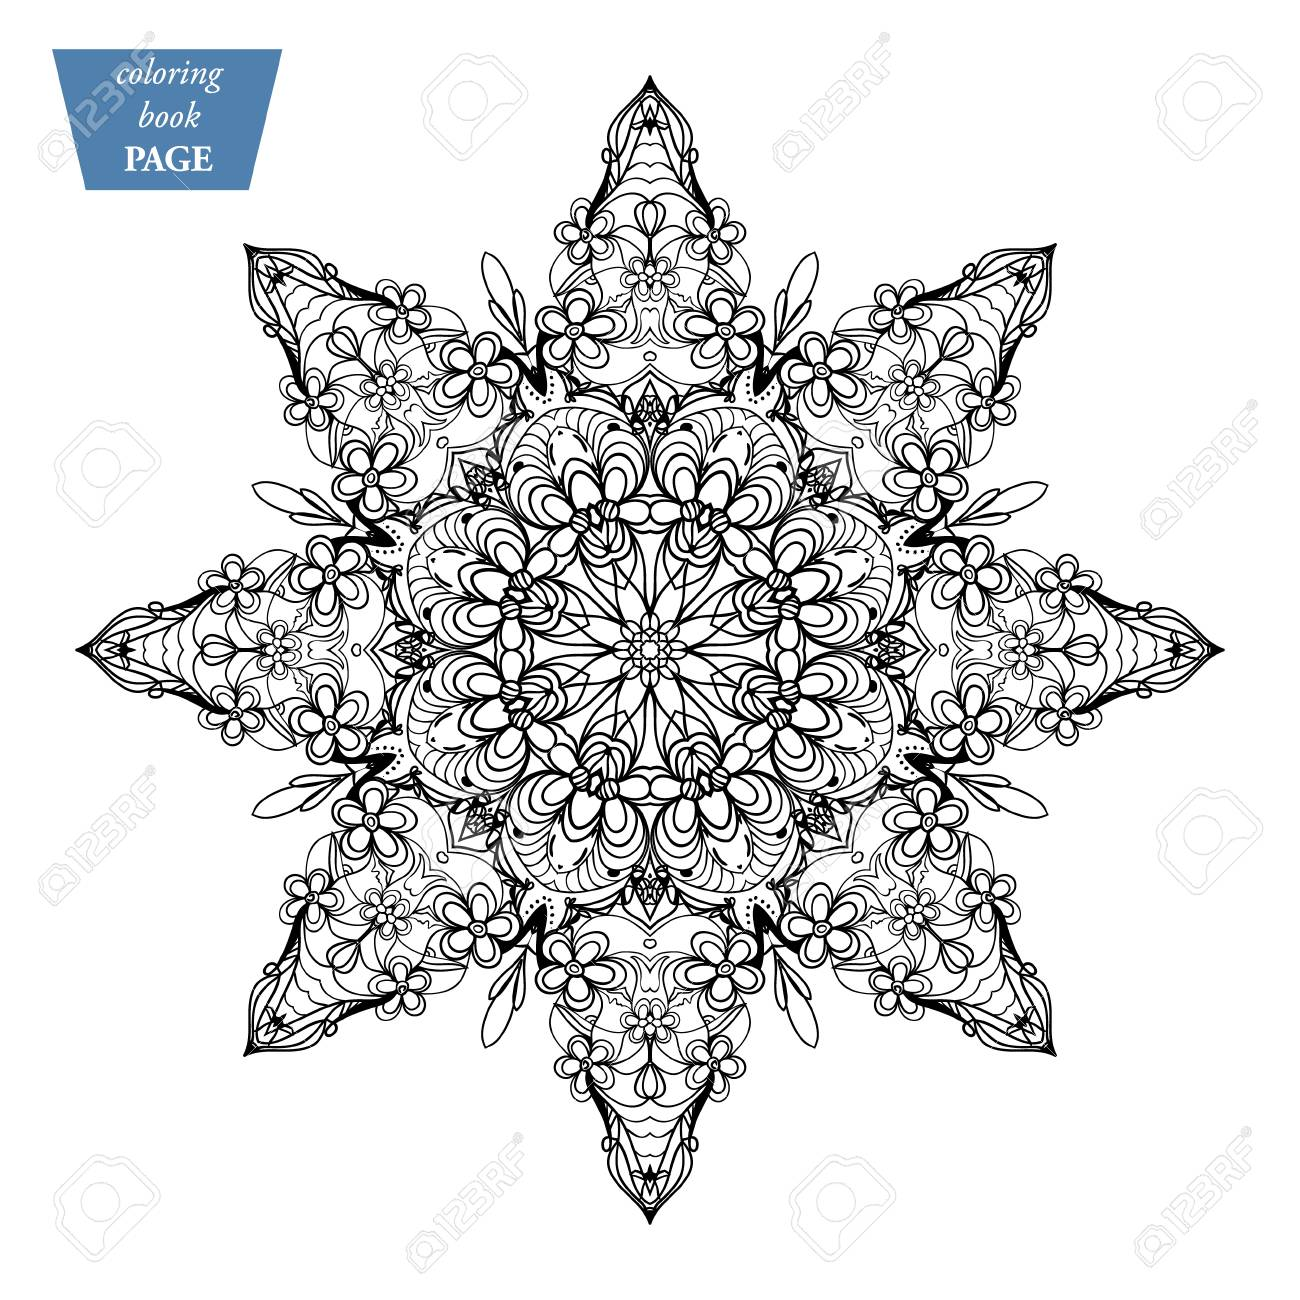 star mandala coloring page vintage decorative elements oriental pattern vector illustration